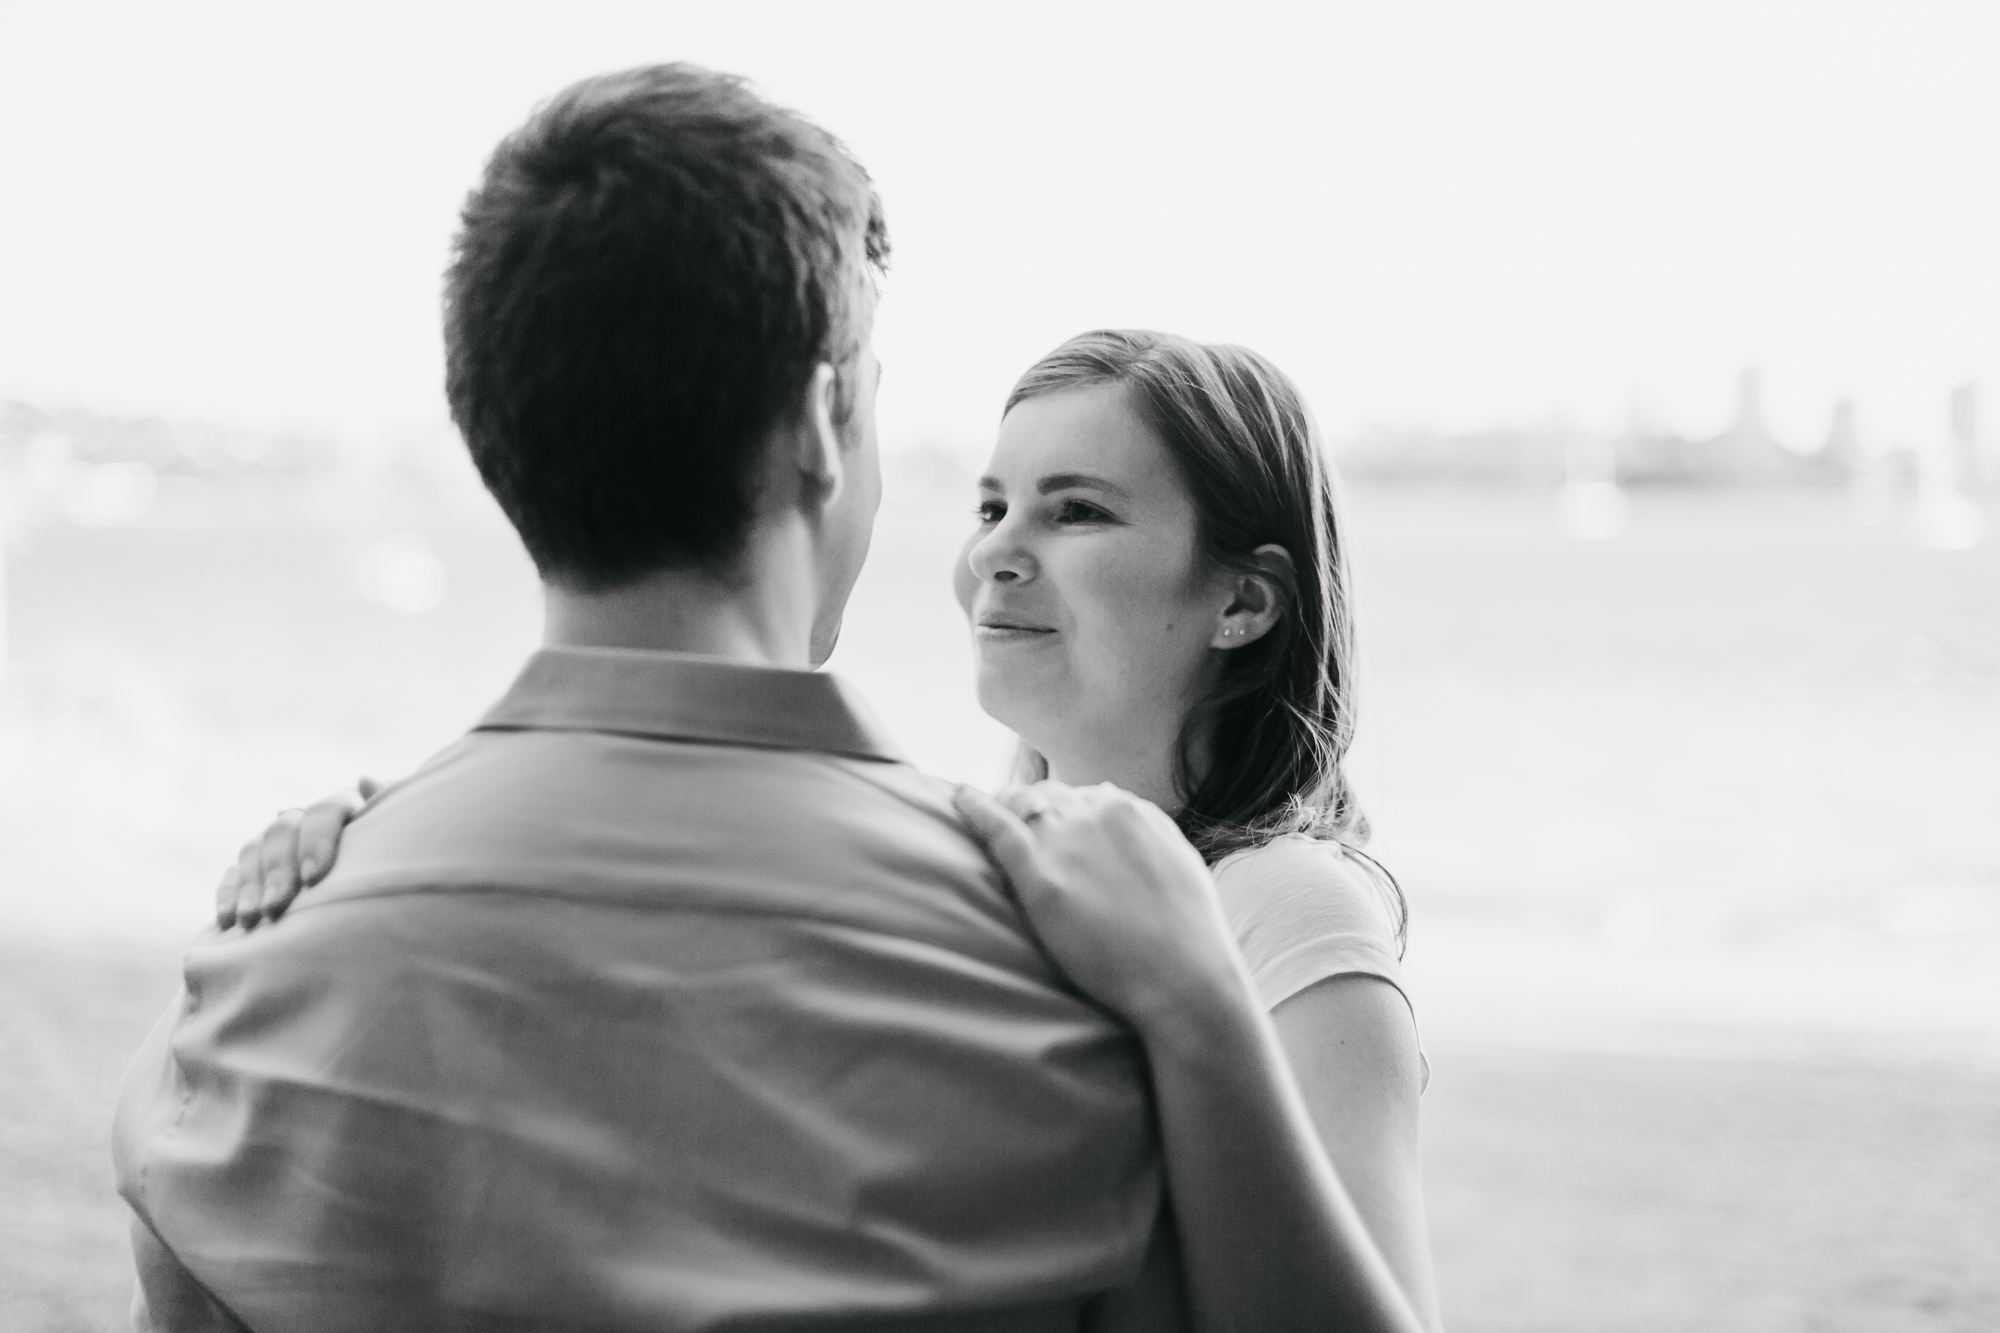 Amanzi and Steven_Engagement_Sydney_Holly Medway Photography-41.JPG